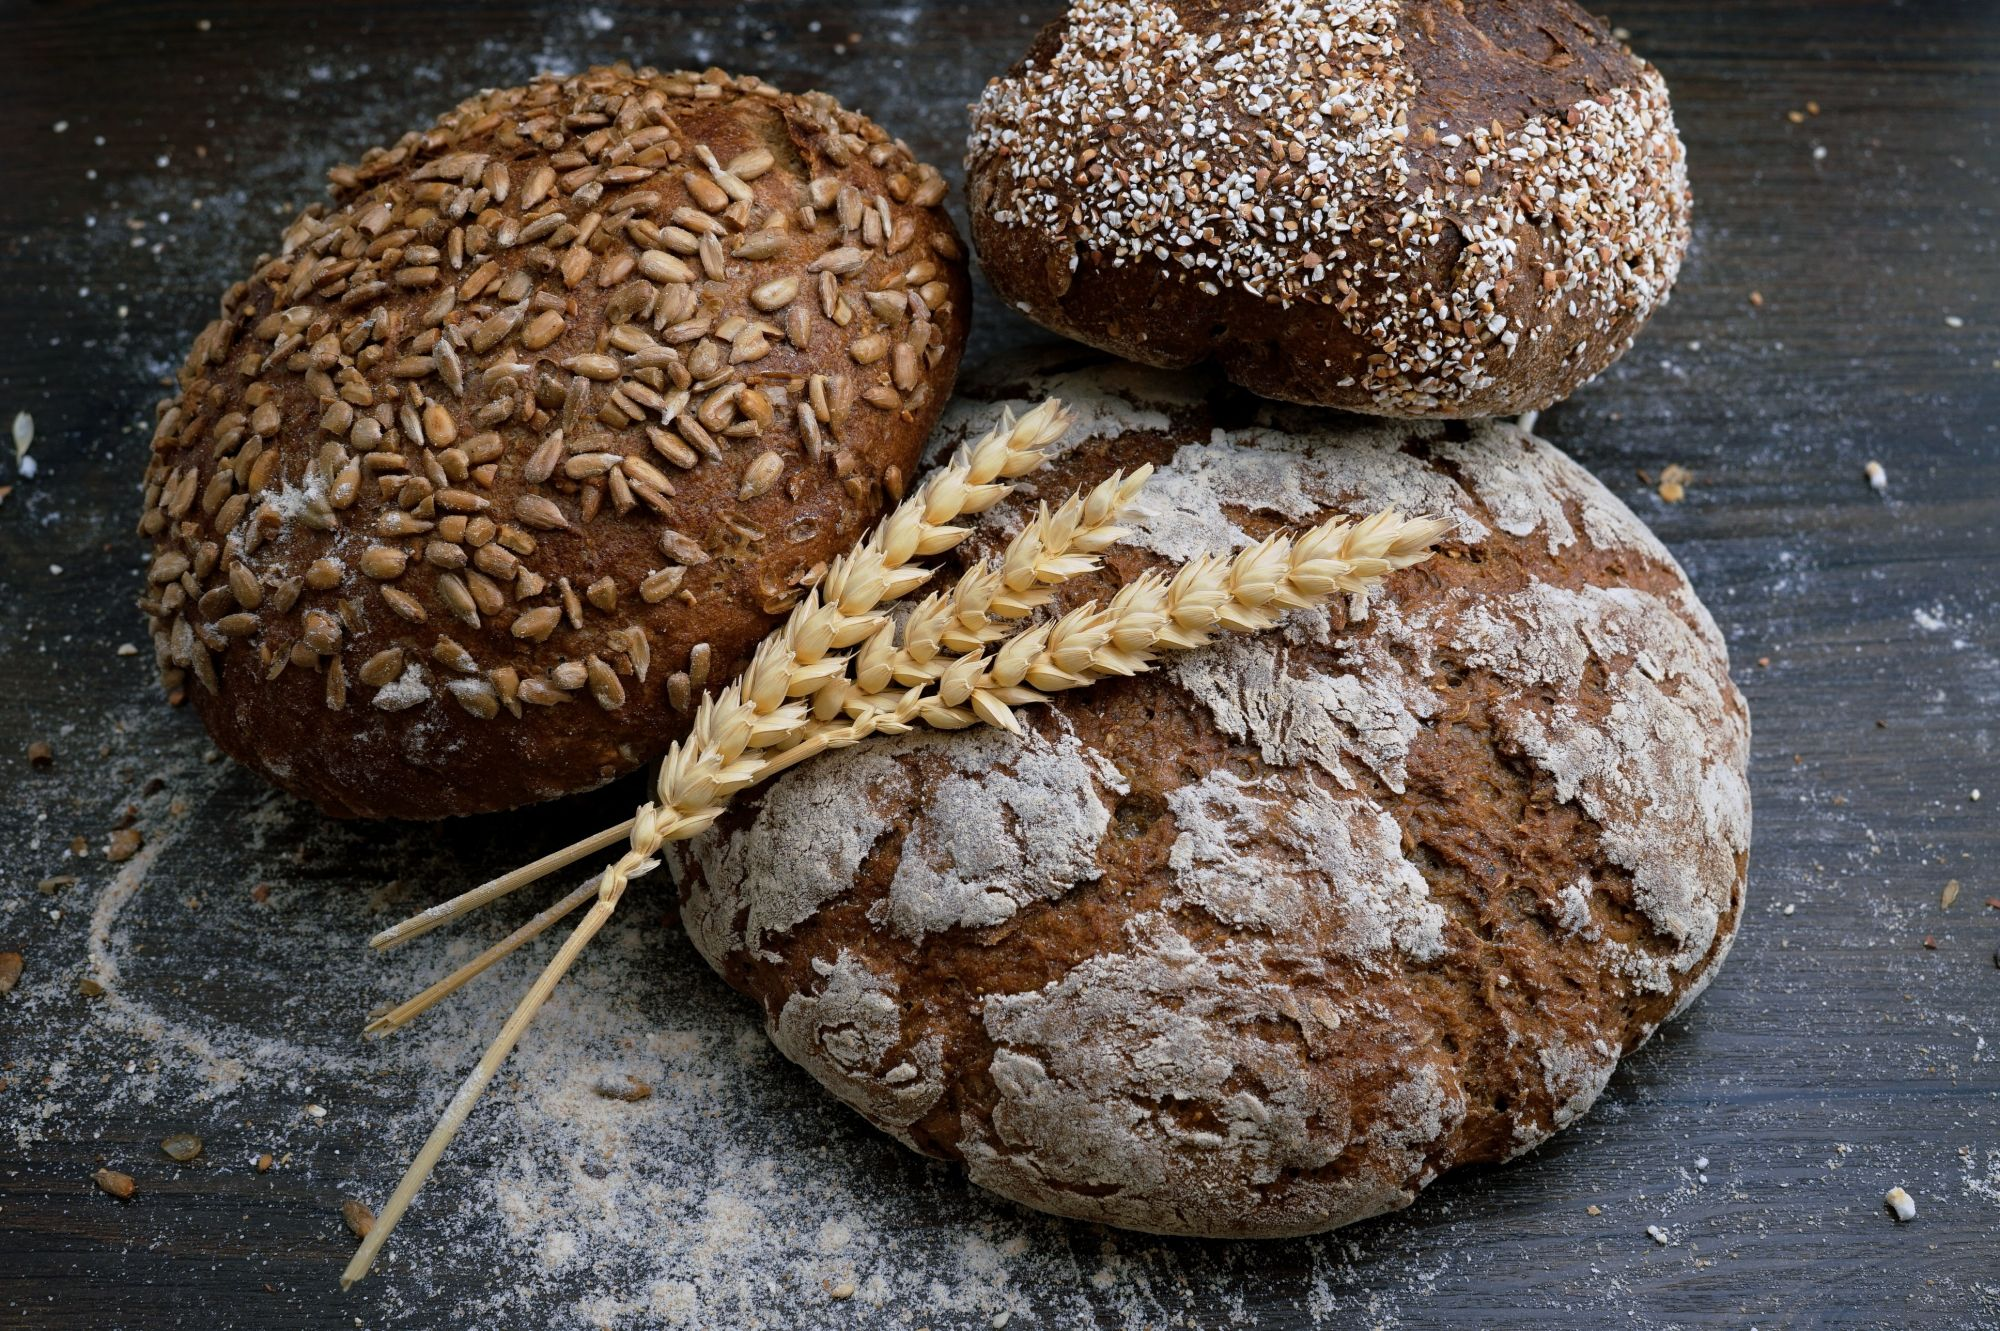 Thinking Of Going Gluten-Free? Read This First